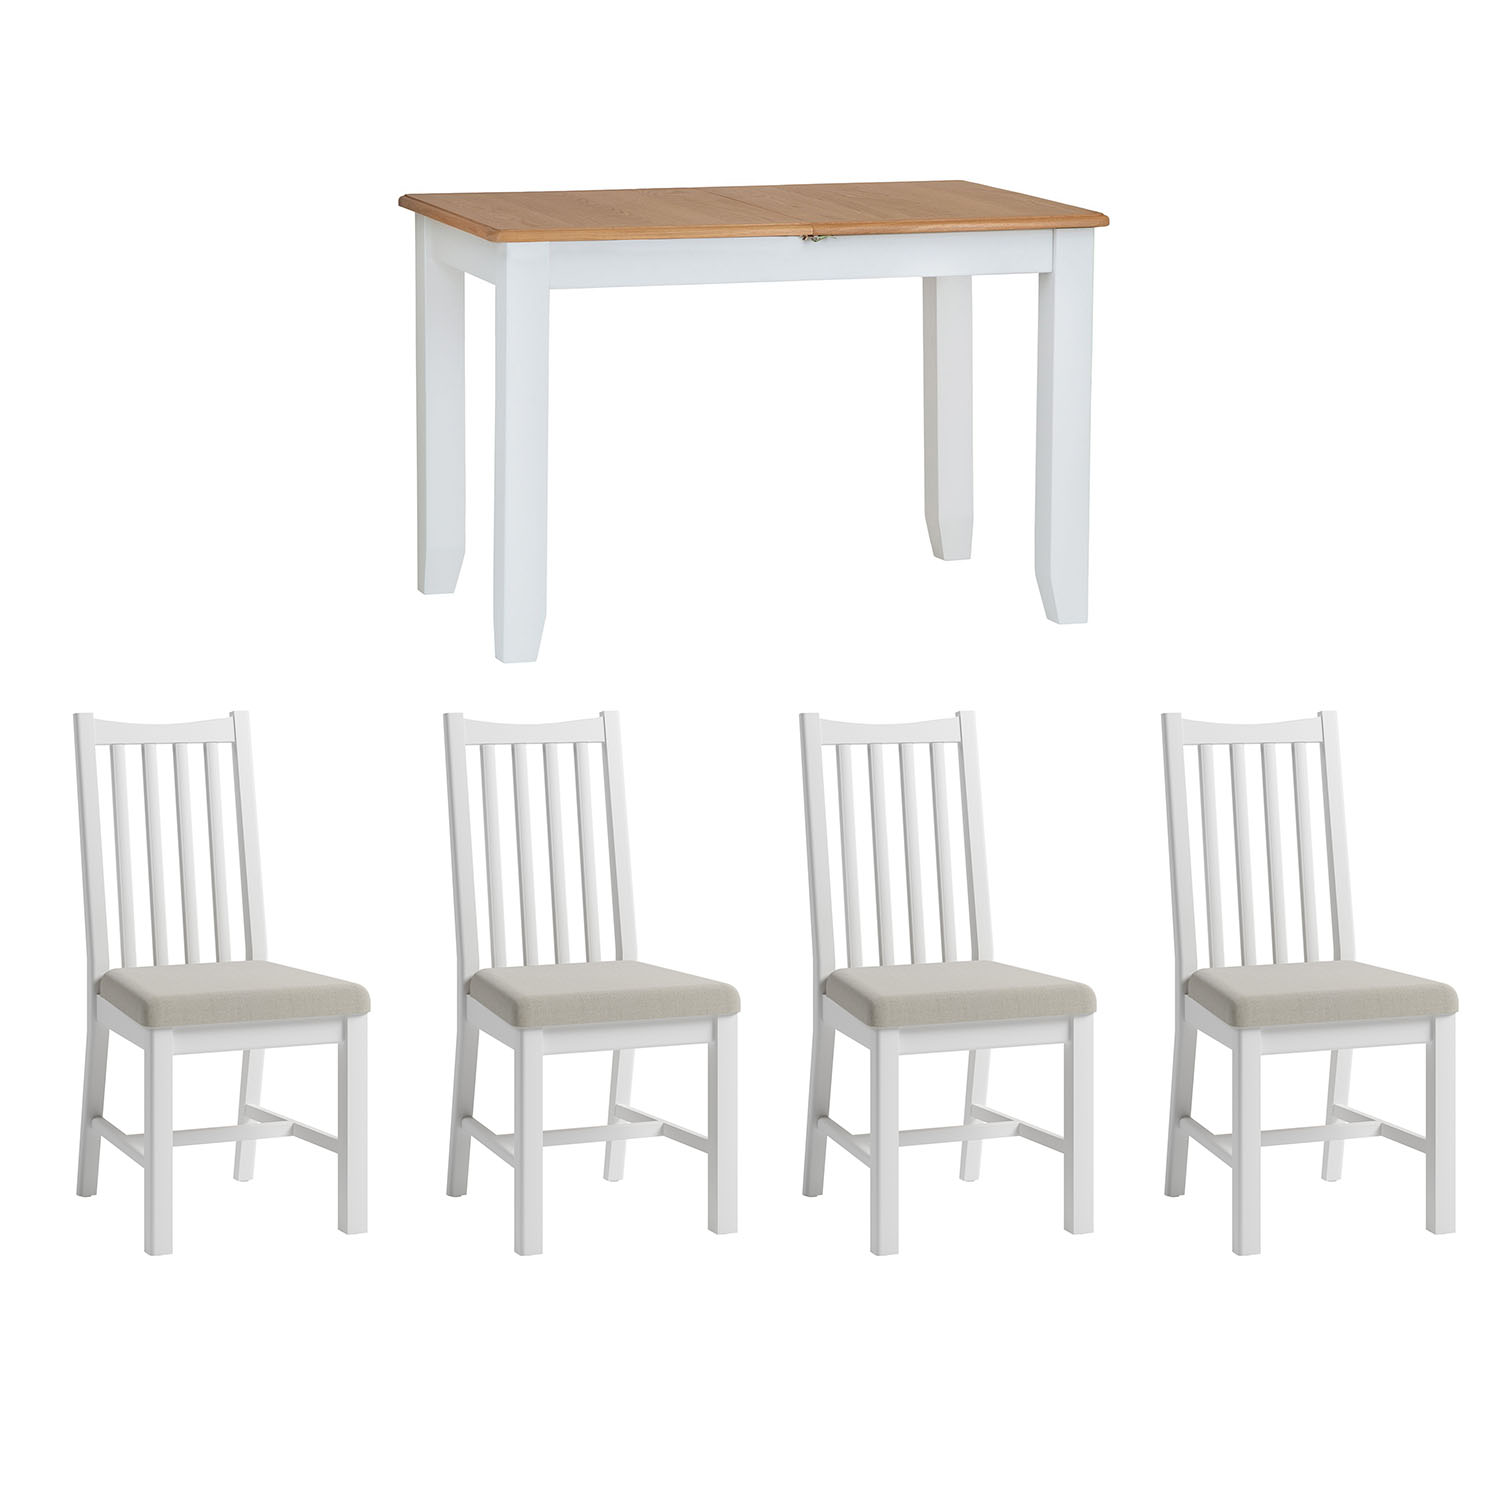 Hurstley Painted 1.2m Table and x4 Dining Chair Set